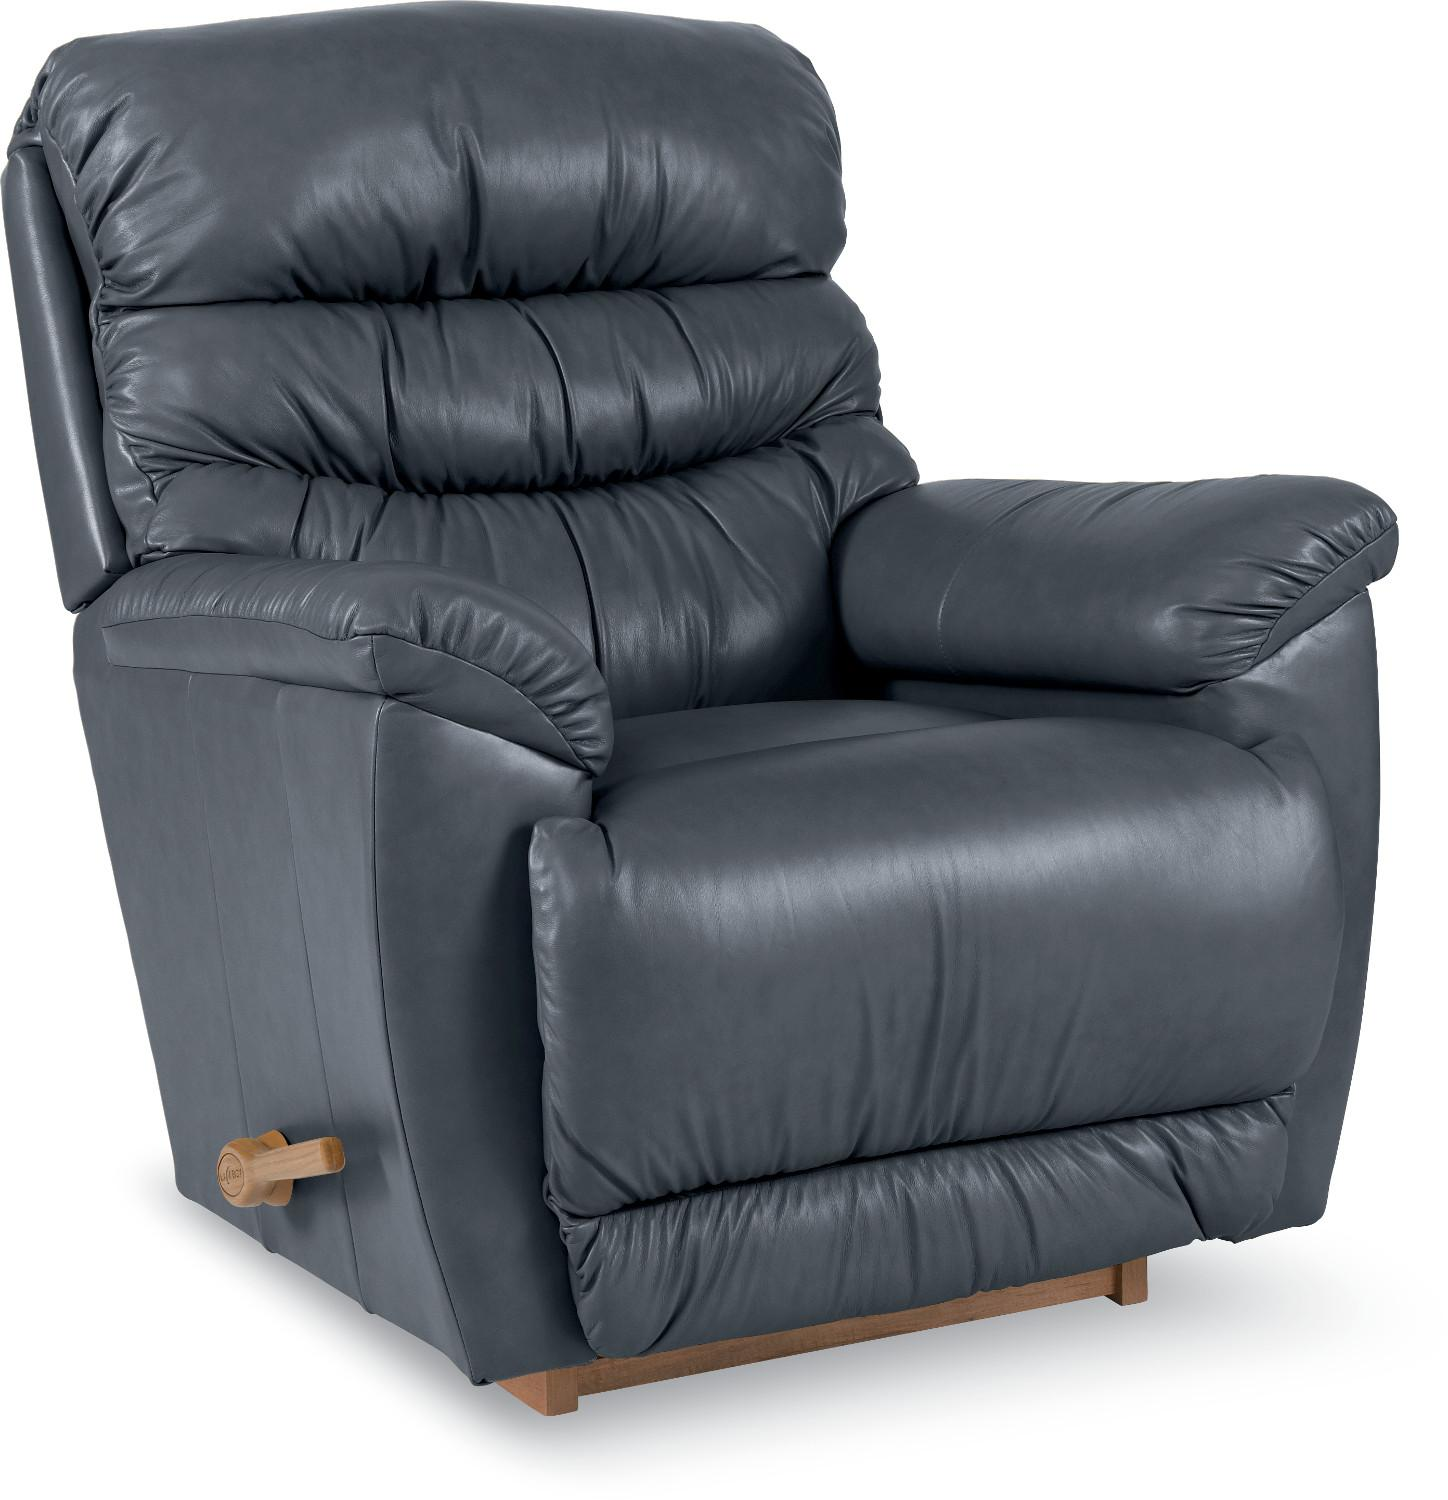 I bought a La-Z-Boy lounge suite in leather, I was clear at the freedom furniture store I required a quality hard wearing leather due to children and pets, I know a lot of people who have both and have had no issues with leather.